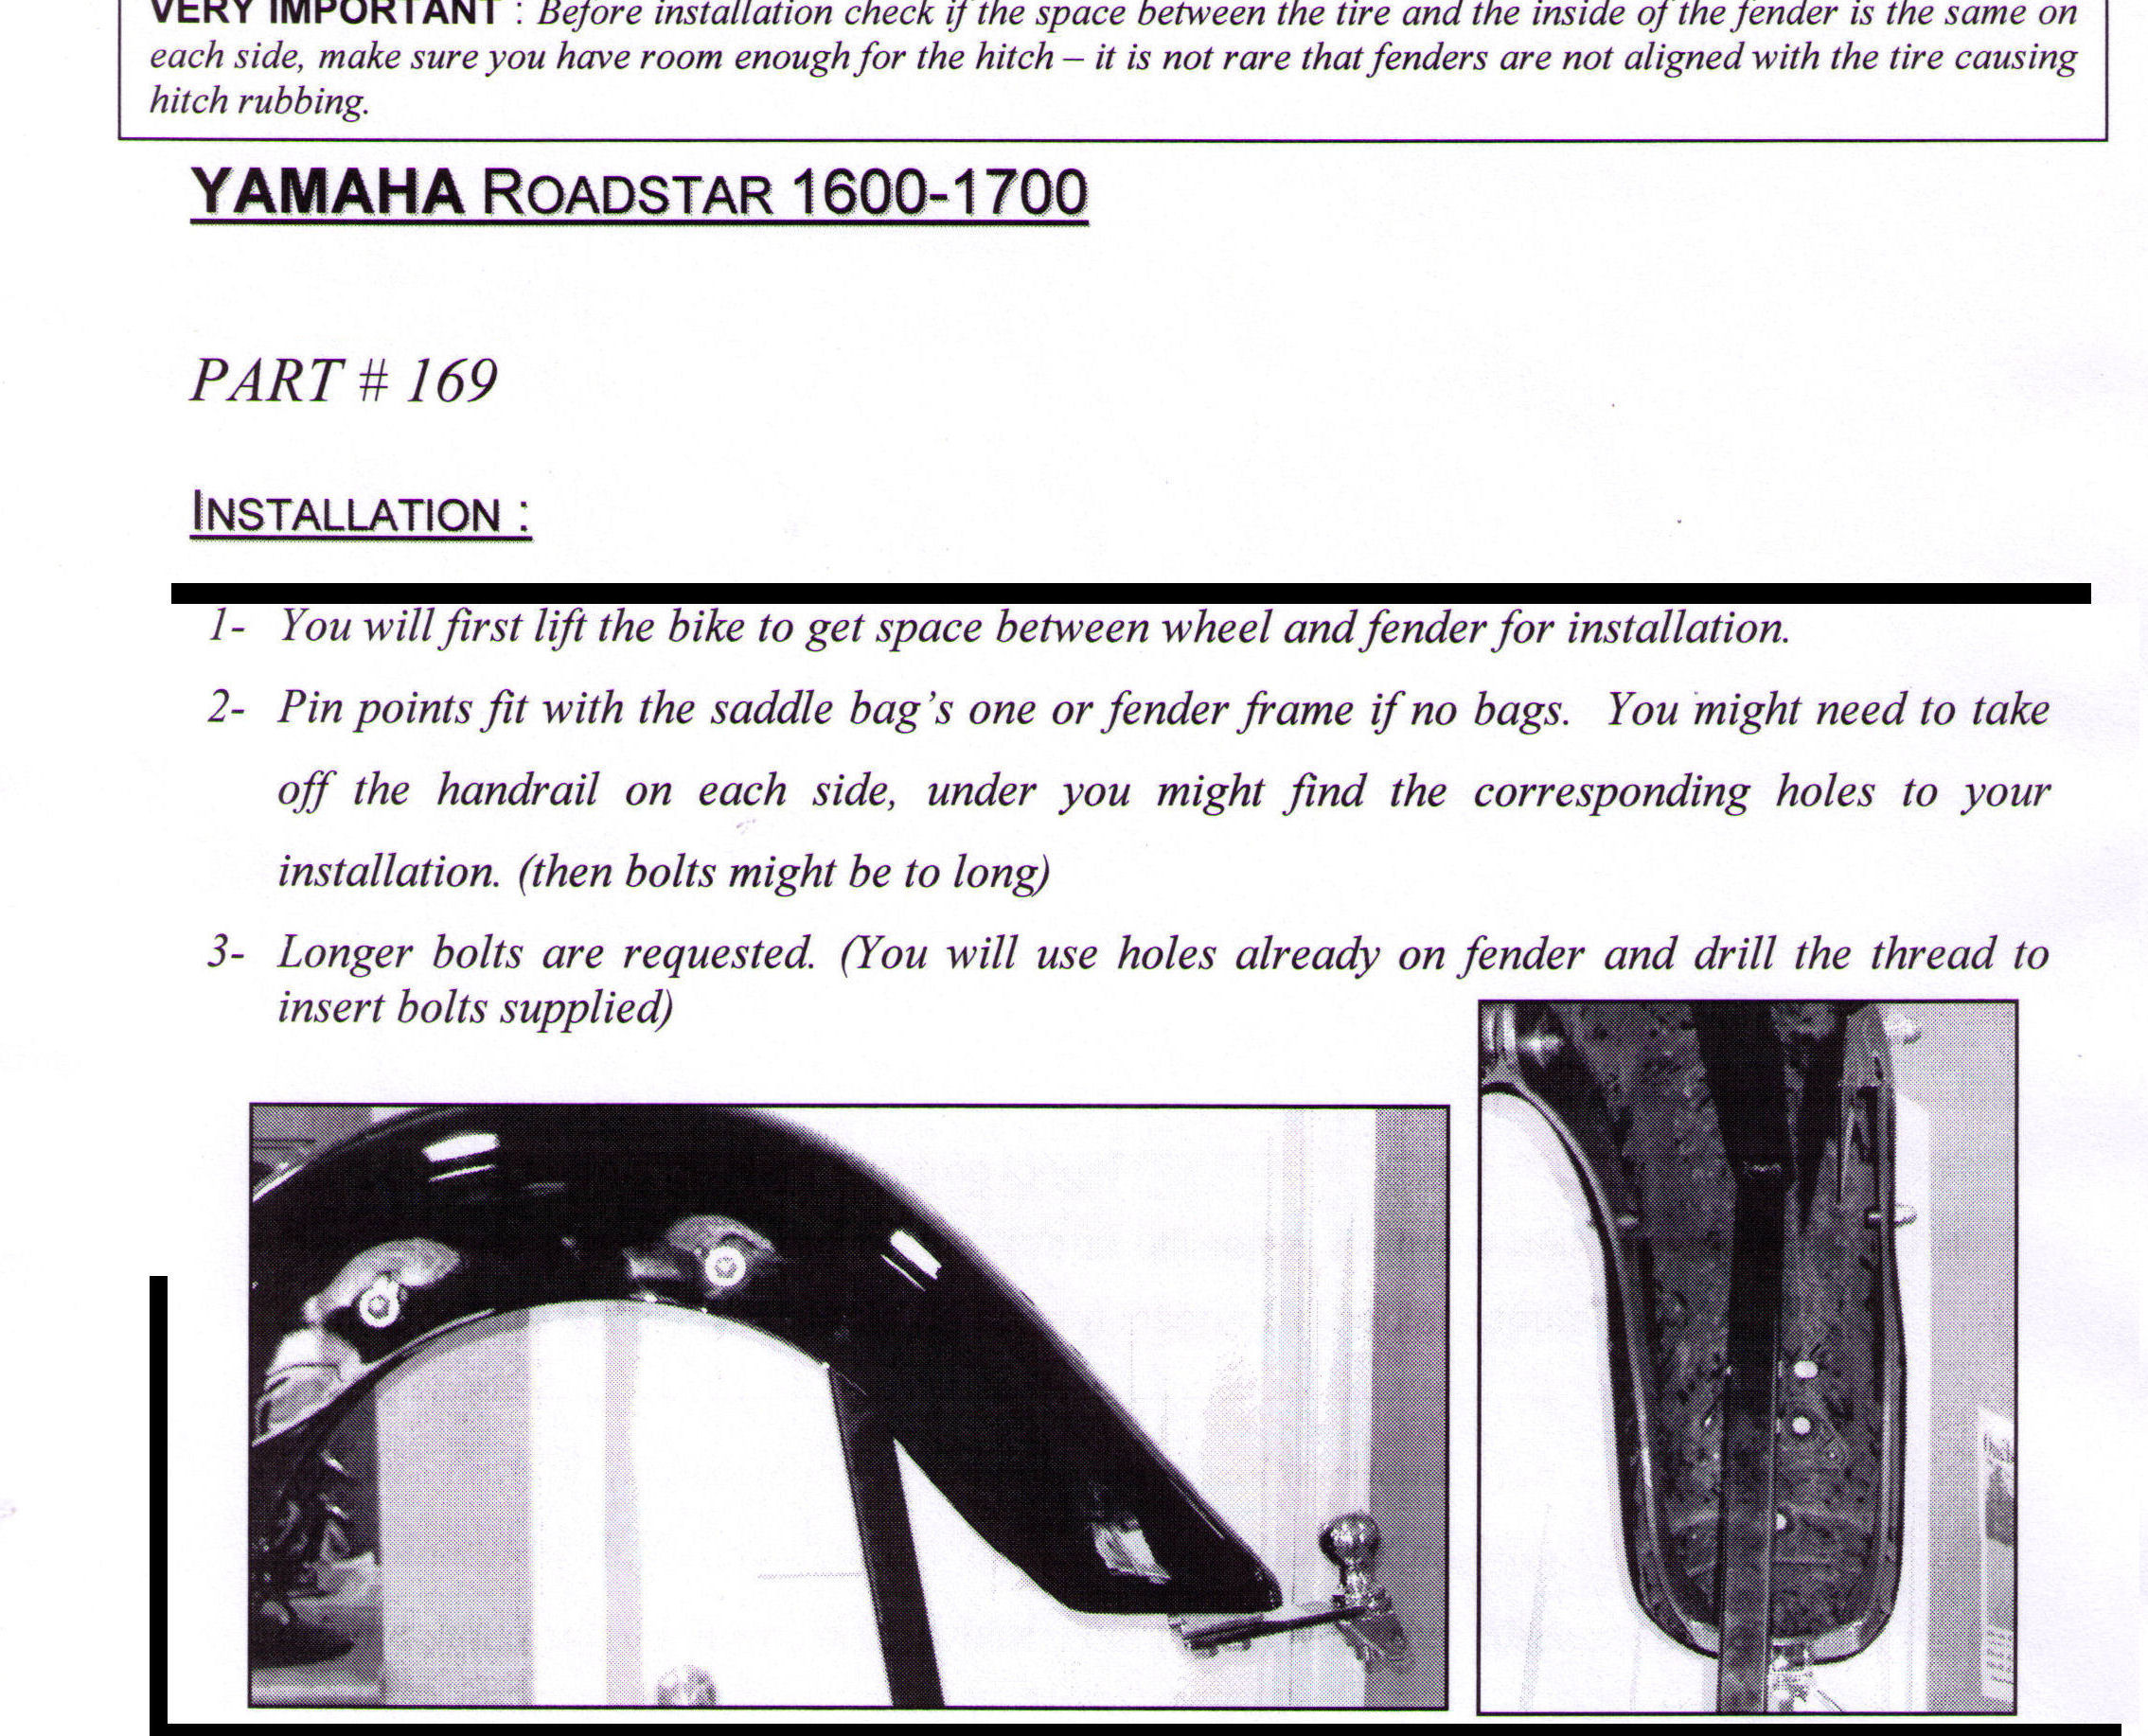 Installation Instructions Yamaha 1600 Roadstar 1999+ And Silverado, 1700 Roadstar Midnight and Roadstar Midnight Canadian